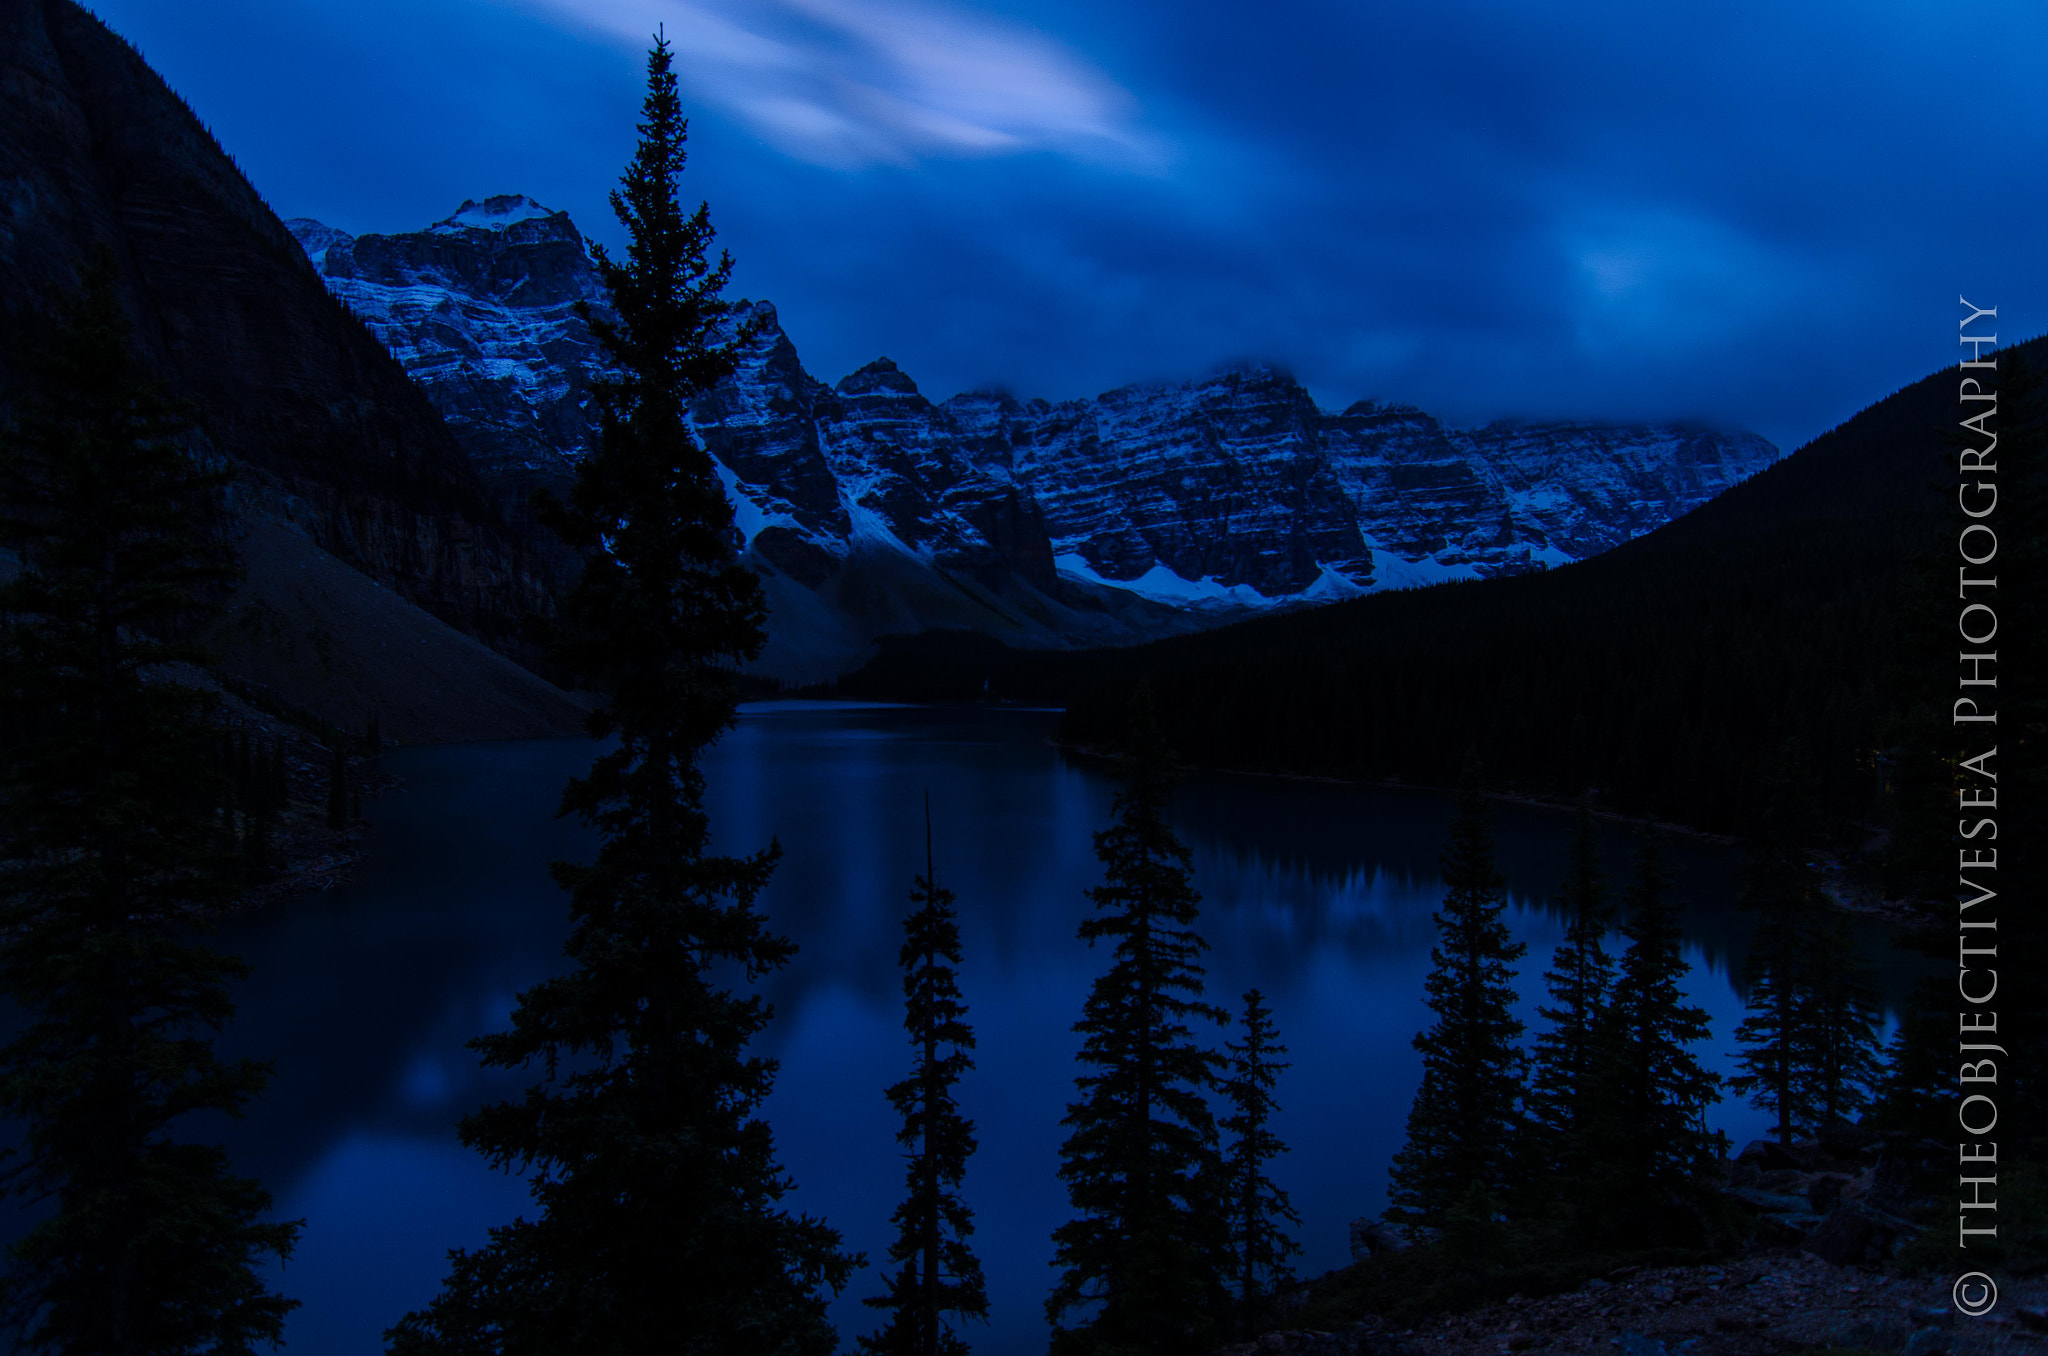 Photograph Moraine Lake at Night by Kevin Smith on 500px